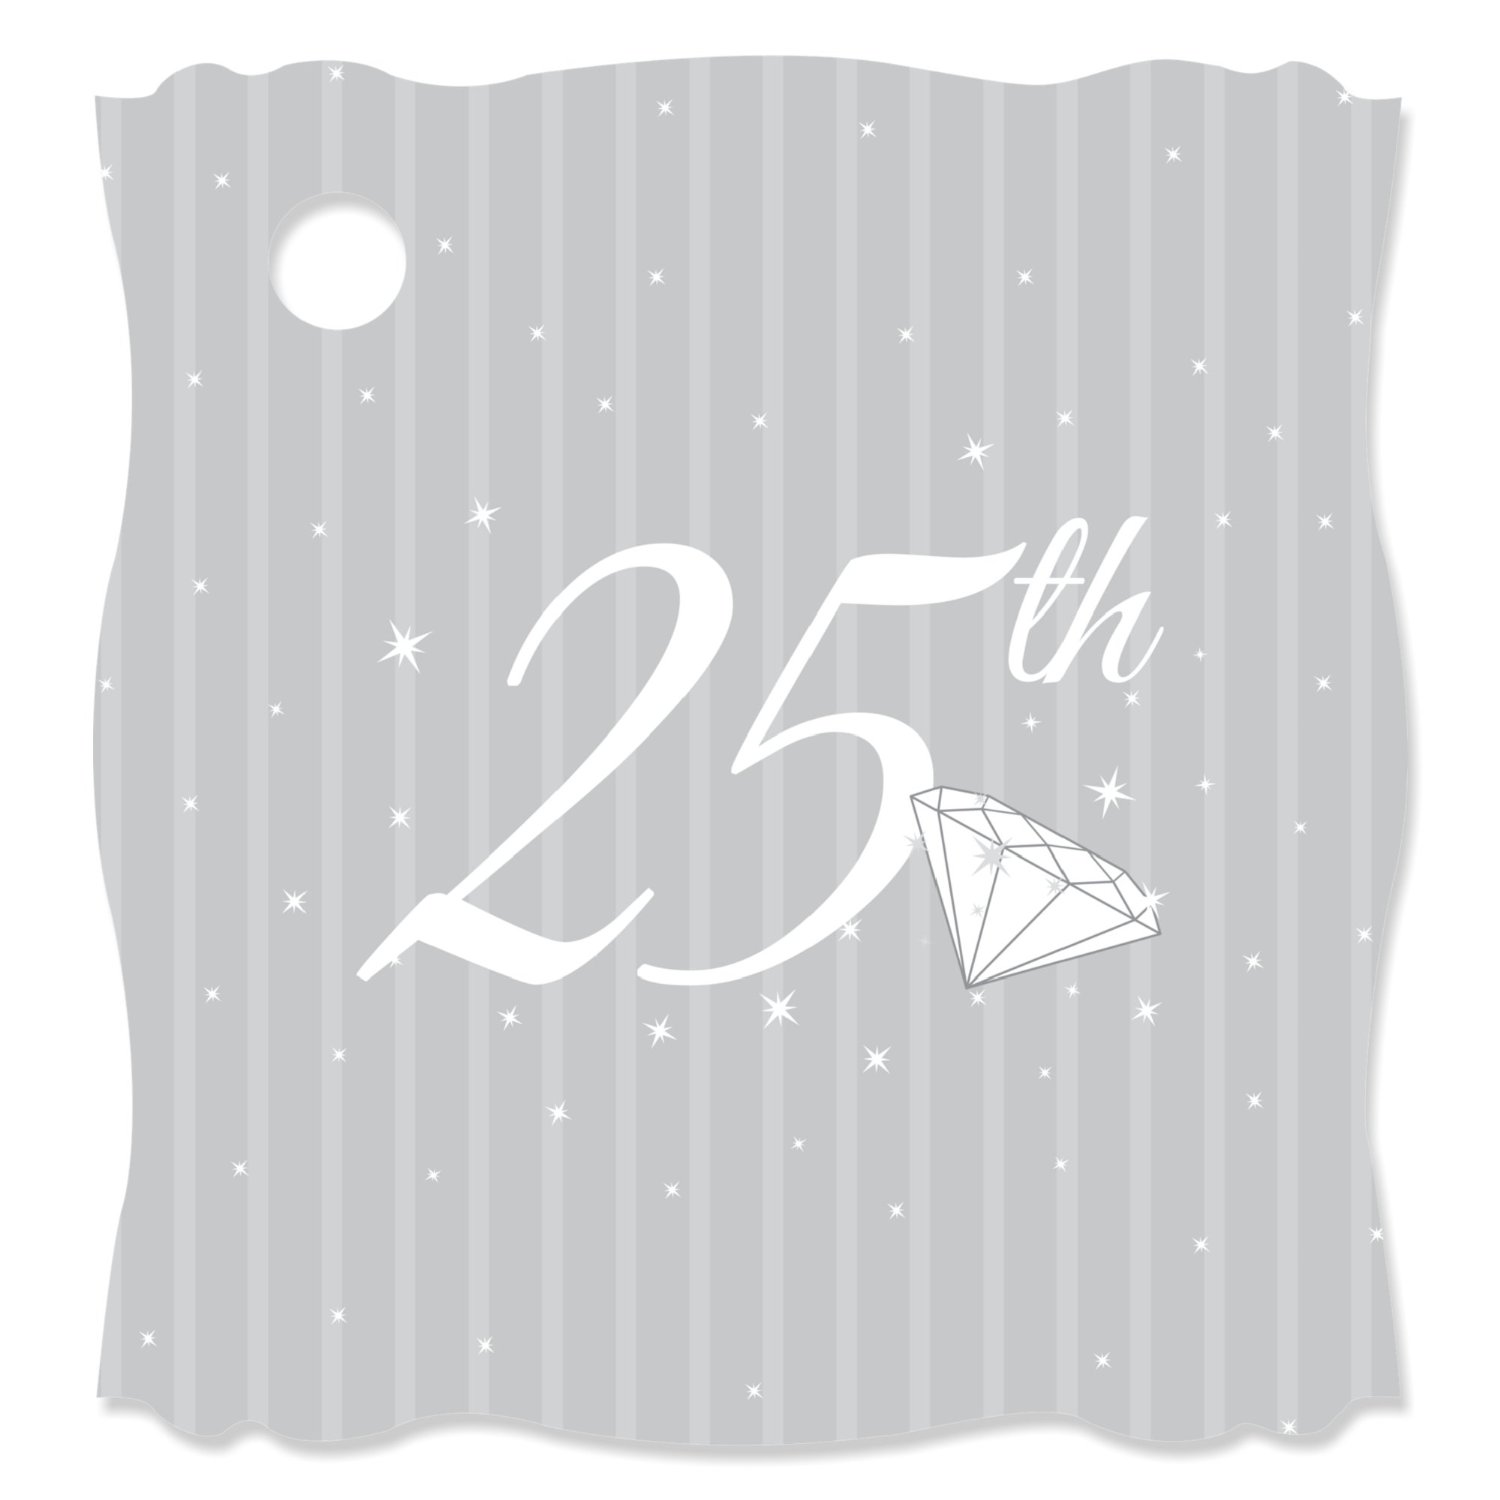 25th Anniversary - Die-Cut Party Favor Tags - (Set of 20)